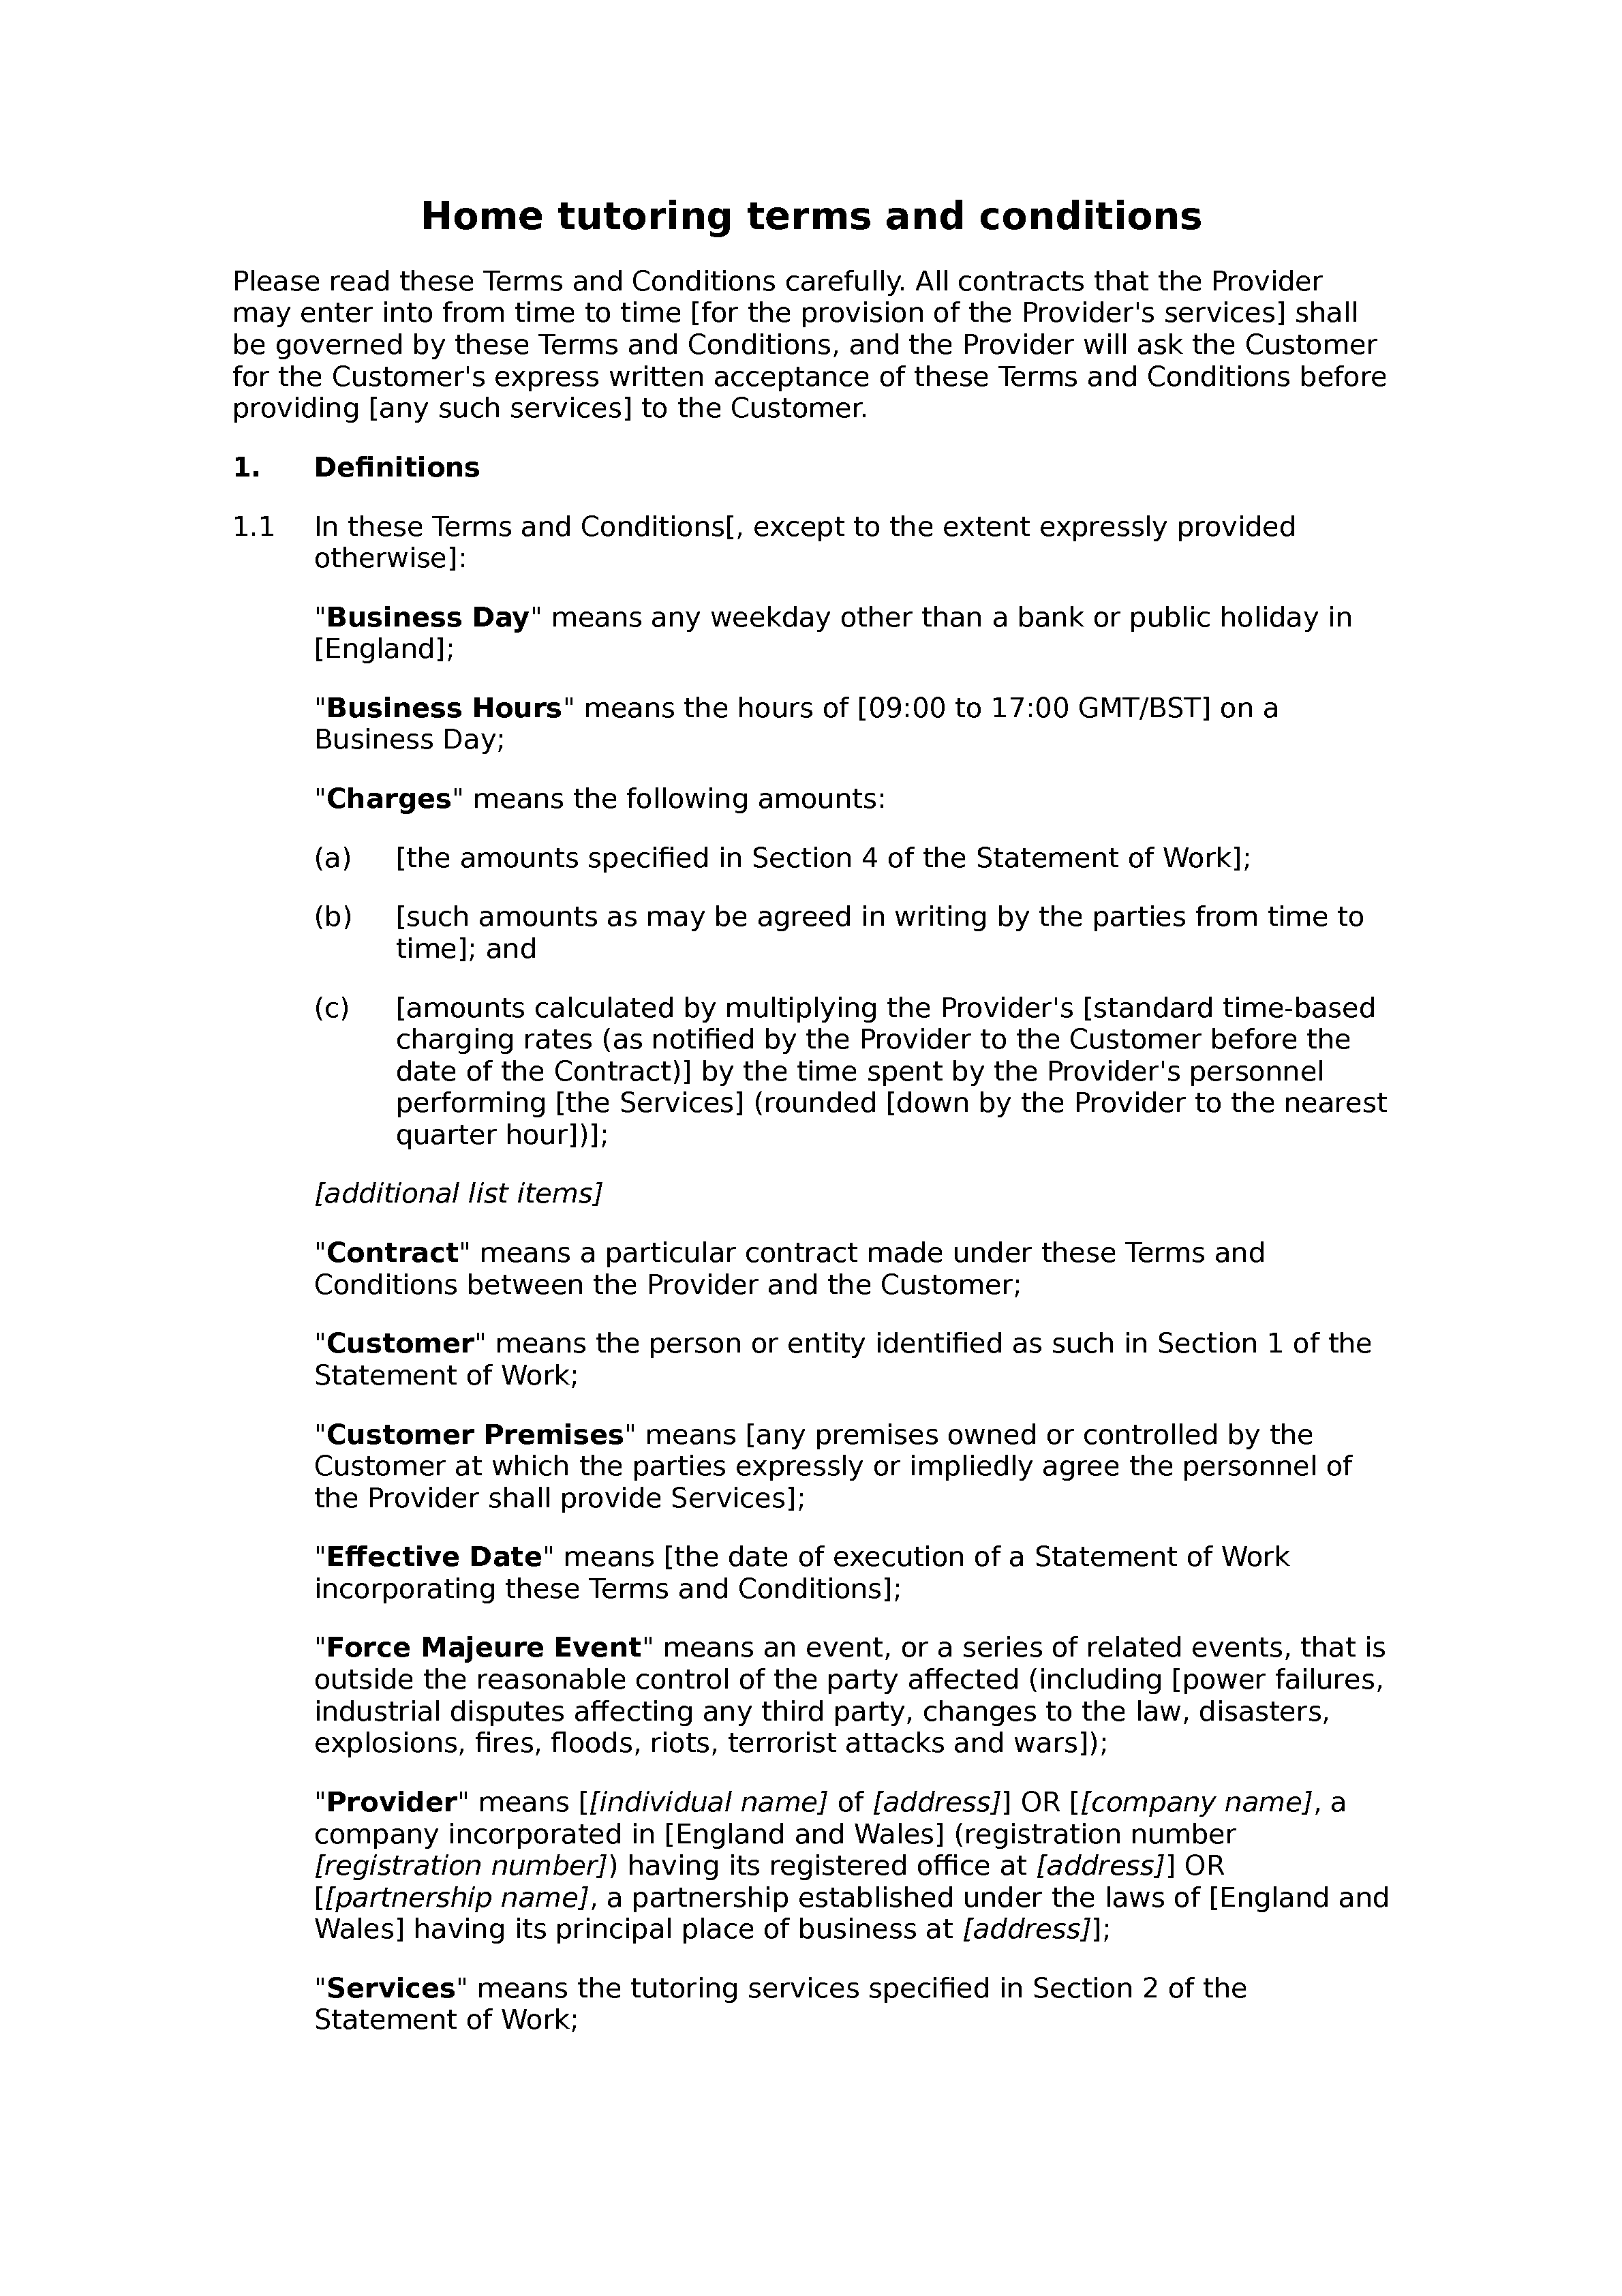 Home tutoring terms and conditions docular for Event terms and conditions template